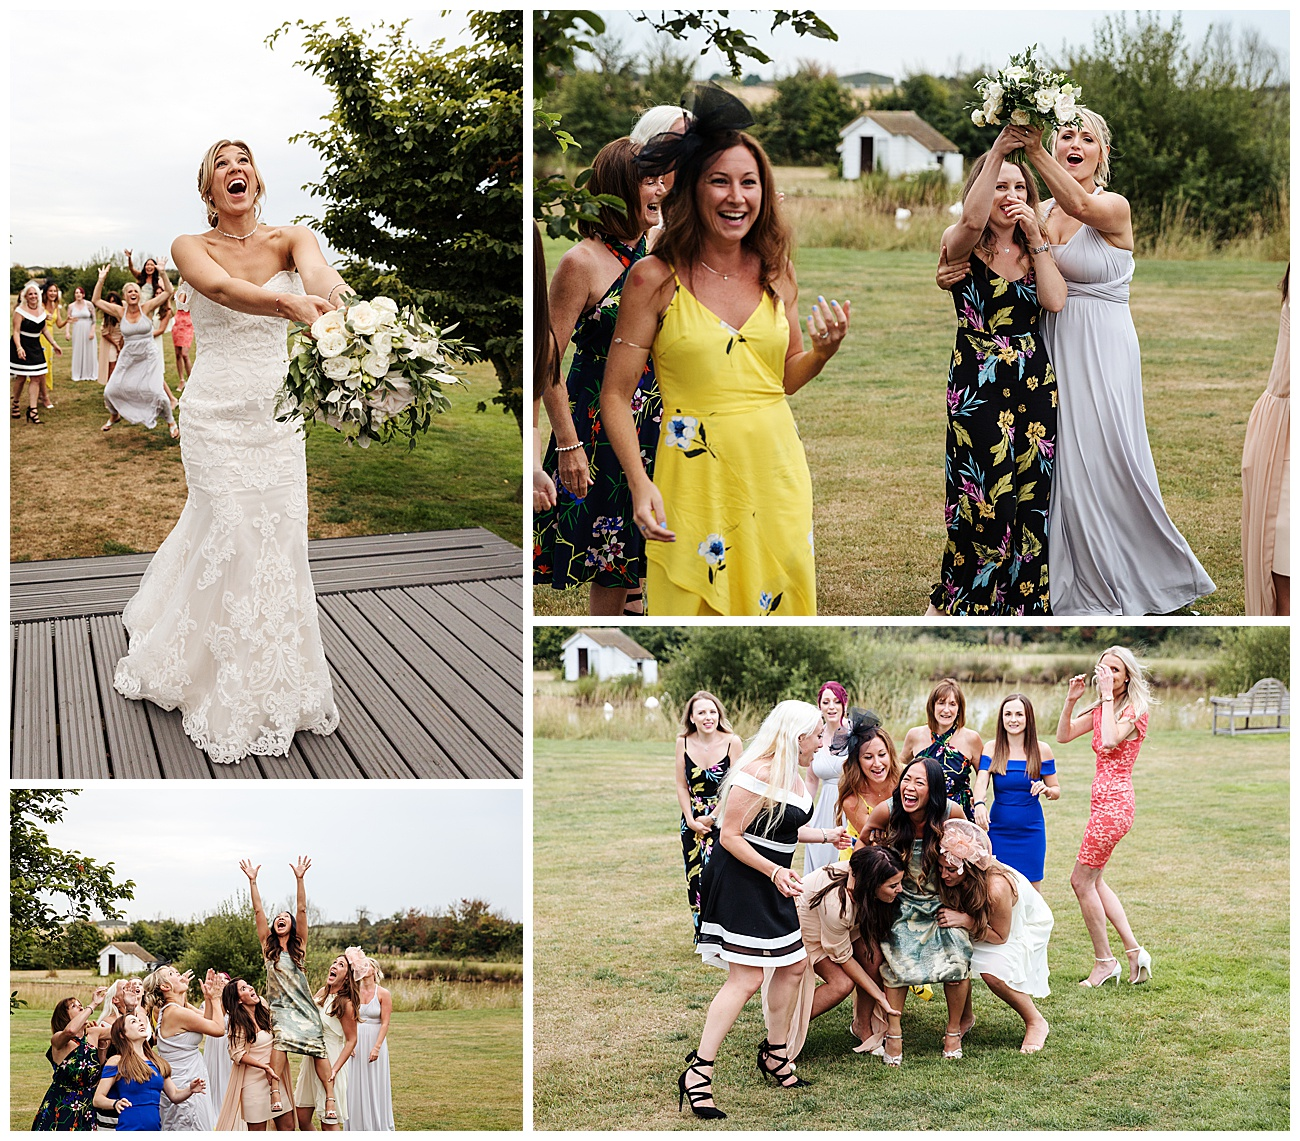 The throwing of the bouquet